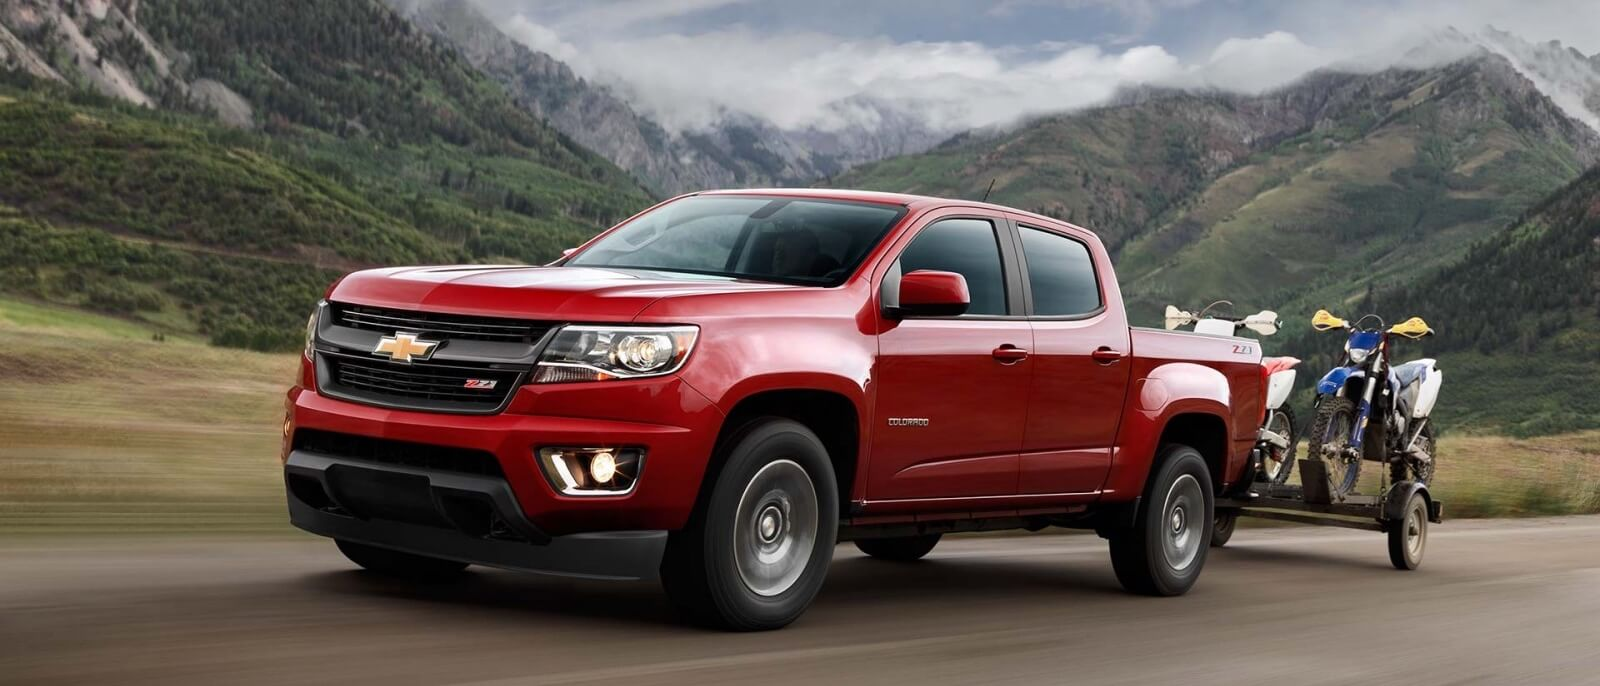 2017 Chevrolet Colorado red exterior model side view